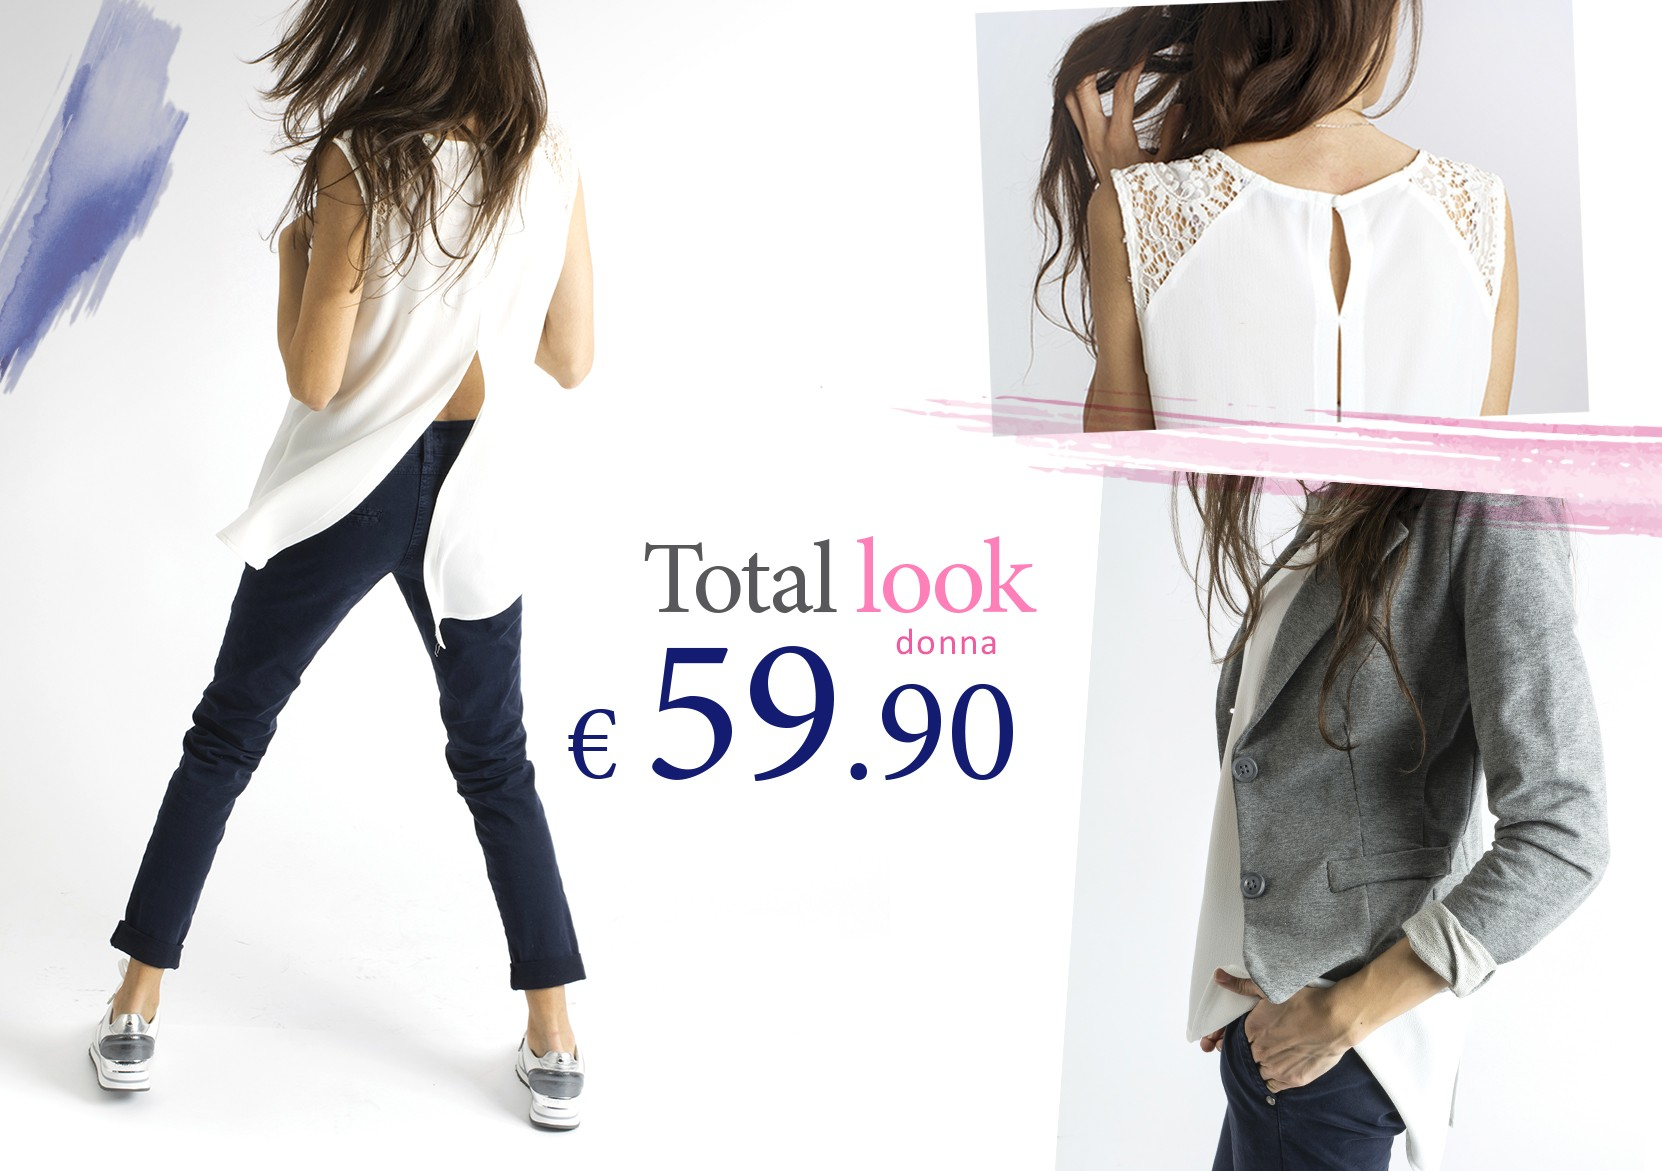 Total look donna a 59,90euro